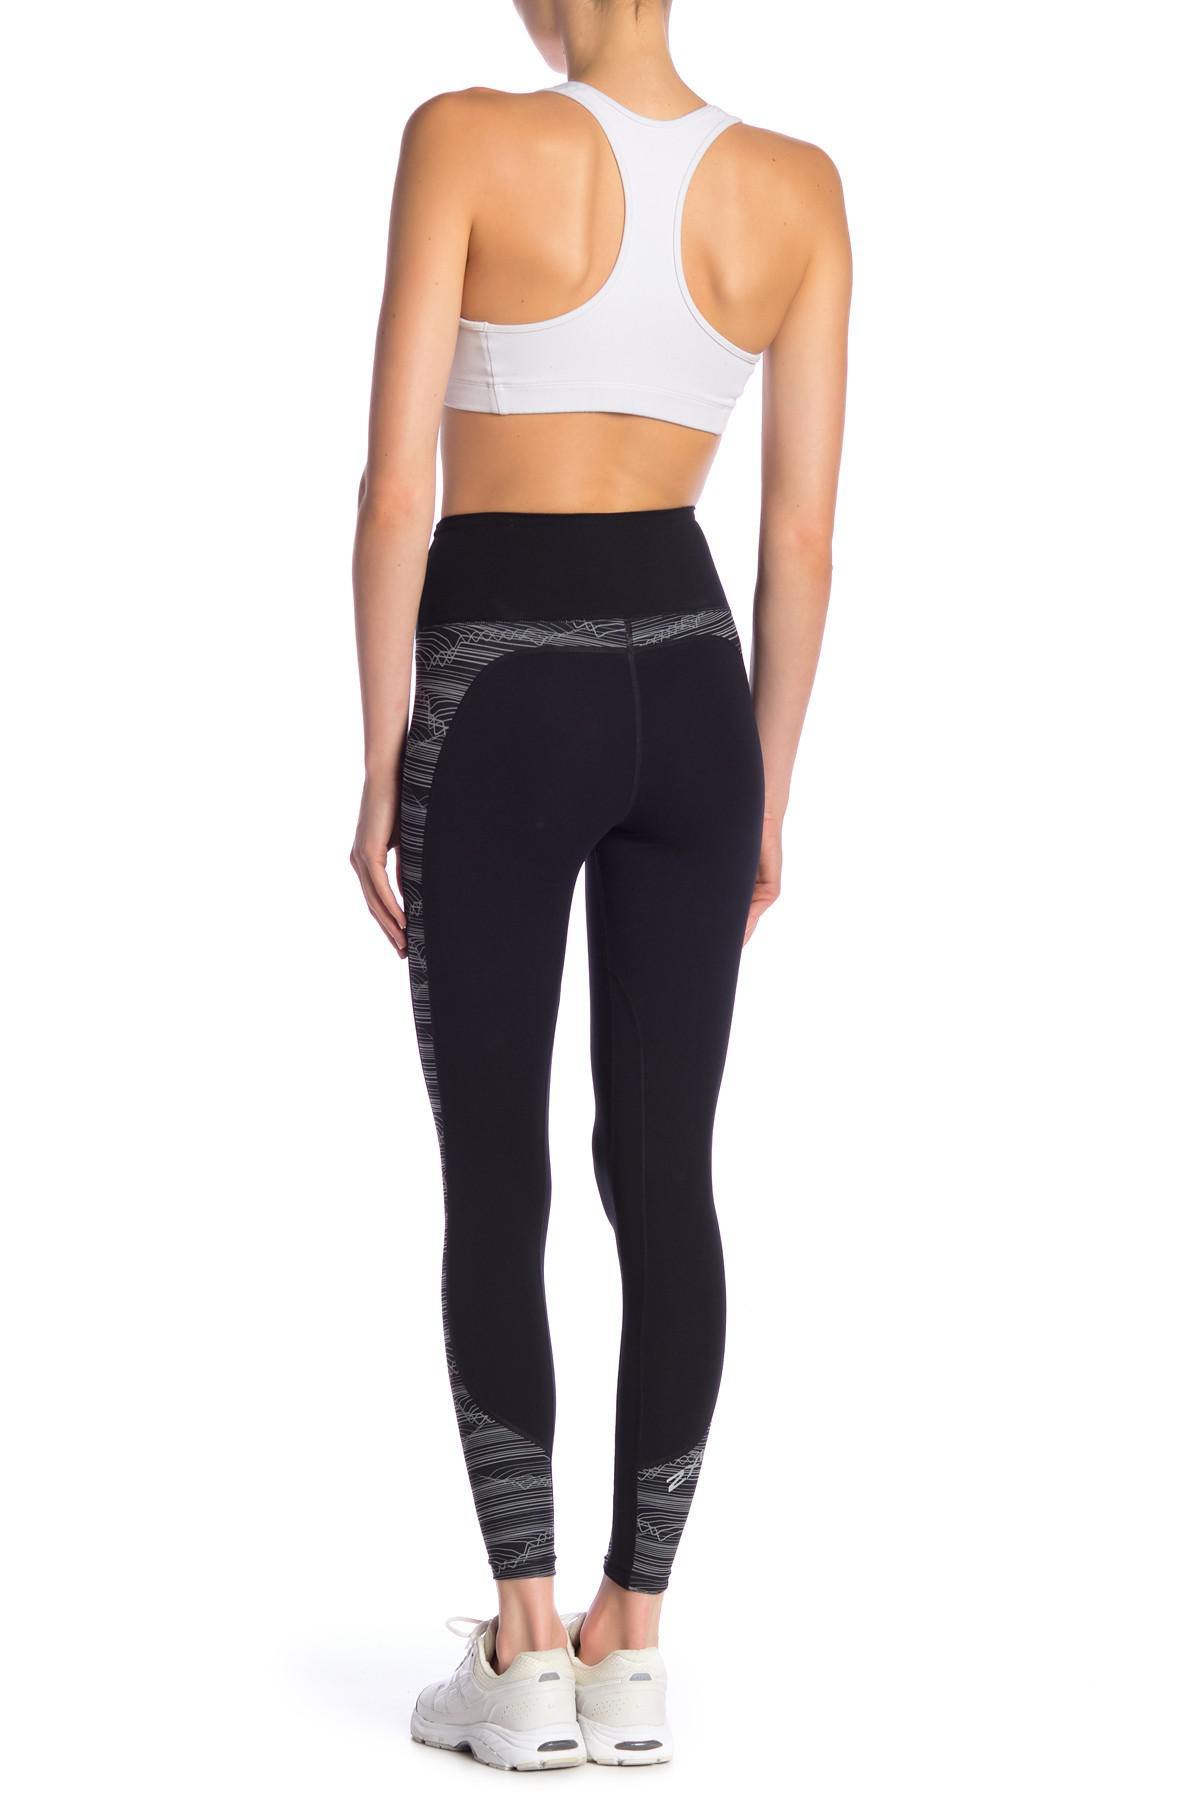 729e13ef Lyst - 2XU High Rise Printed Panel Compression Tights in Black